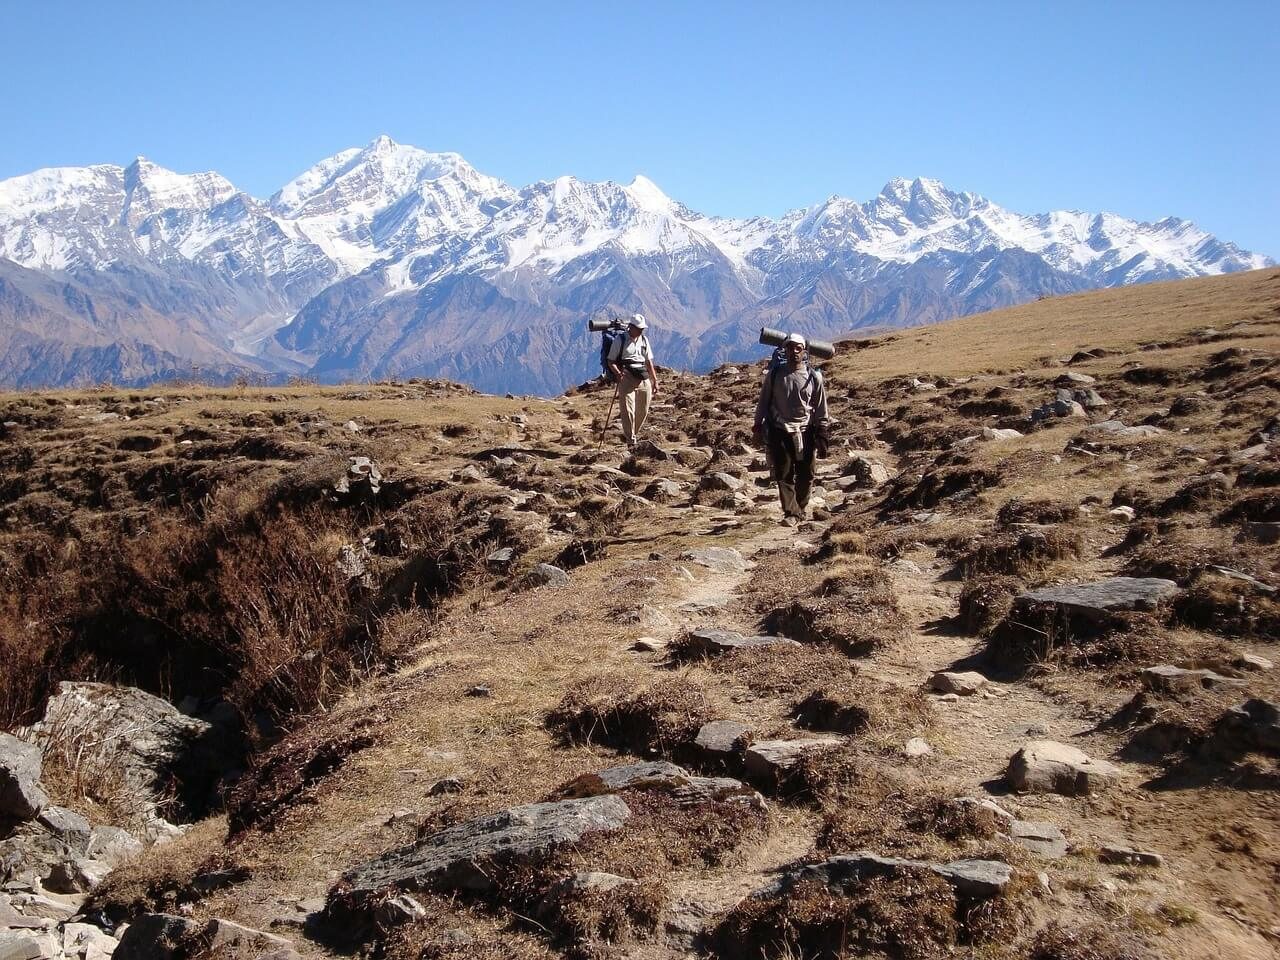 Word famous Sherpa Porter and tourist trekking in the Himalayas